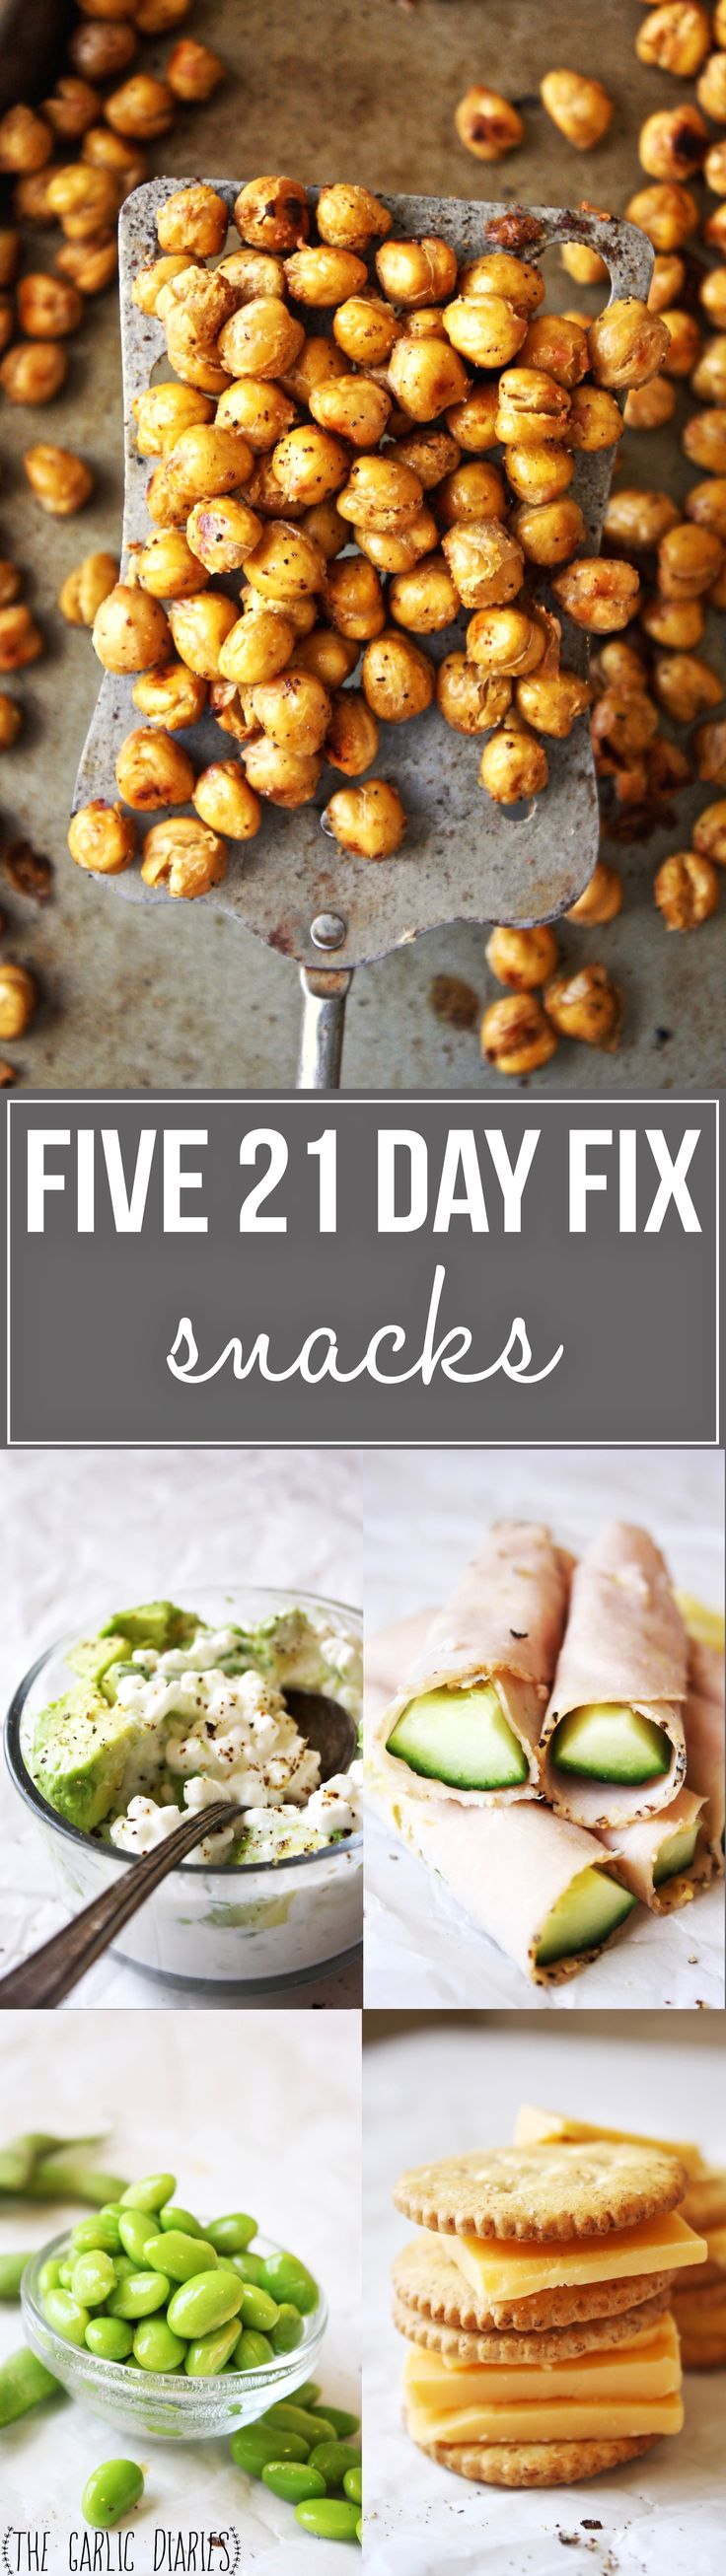 Five 21 Day Fix Snacks - Sometimes it can feel like you eat the same boring things over and over again; these yummy snacks are perfect to bring some variety and spice to your life! TheGarlicDiaries.com